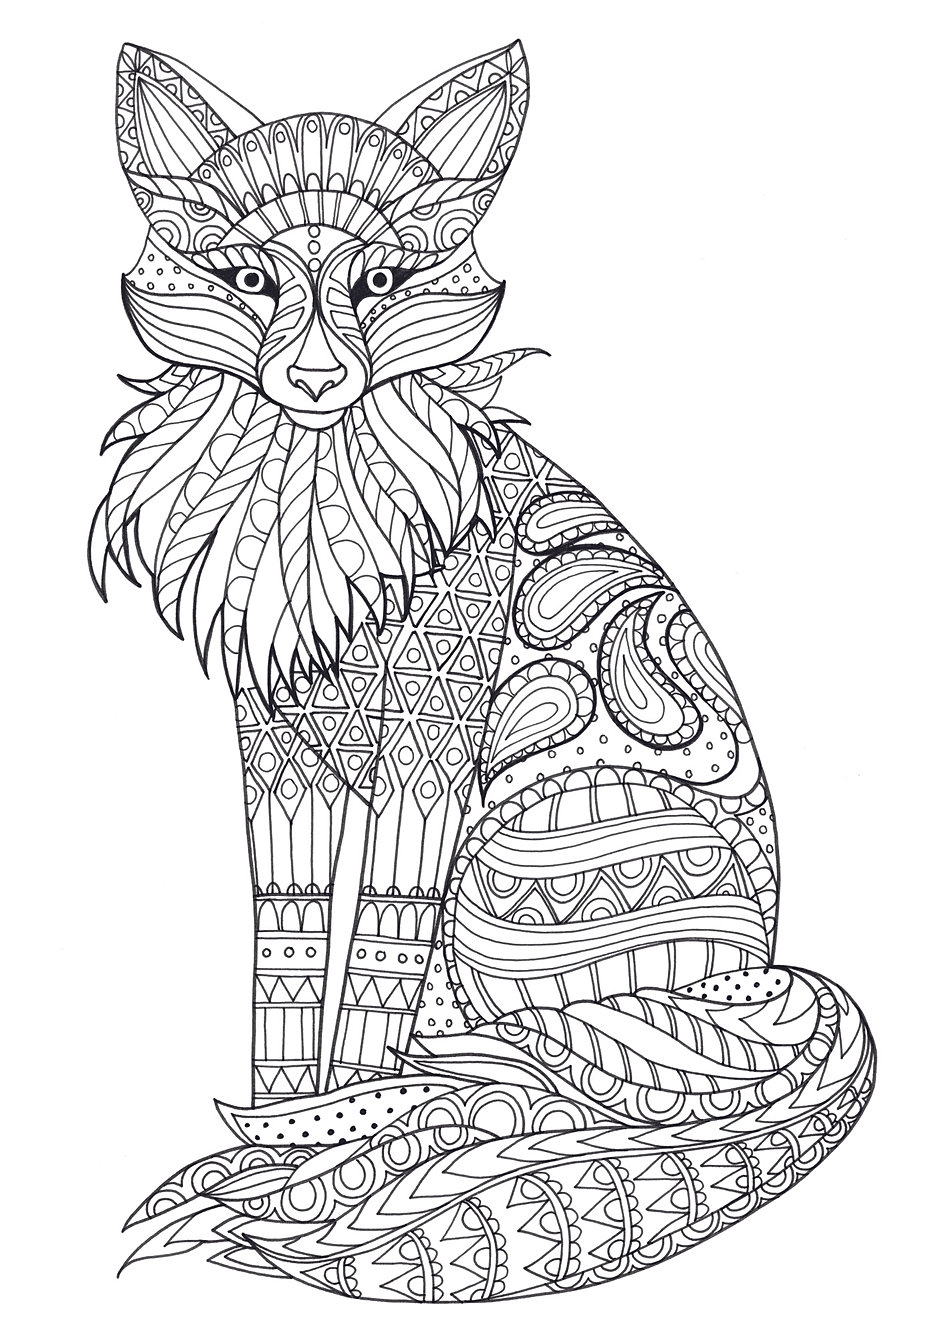 Home New Work Me News Contact Archive Sketch Coloring Page